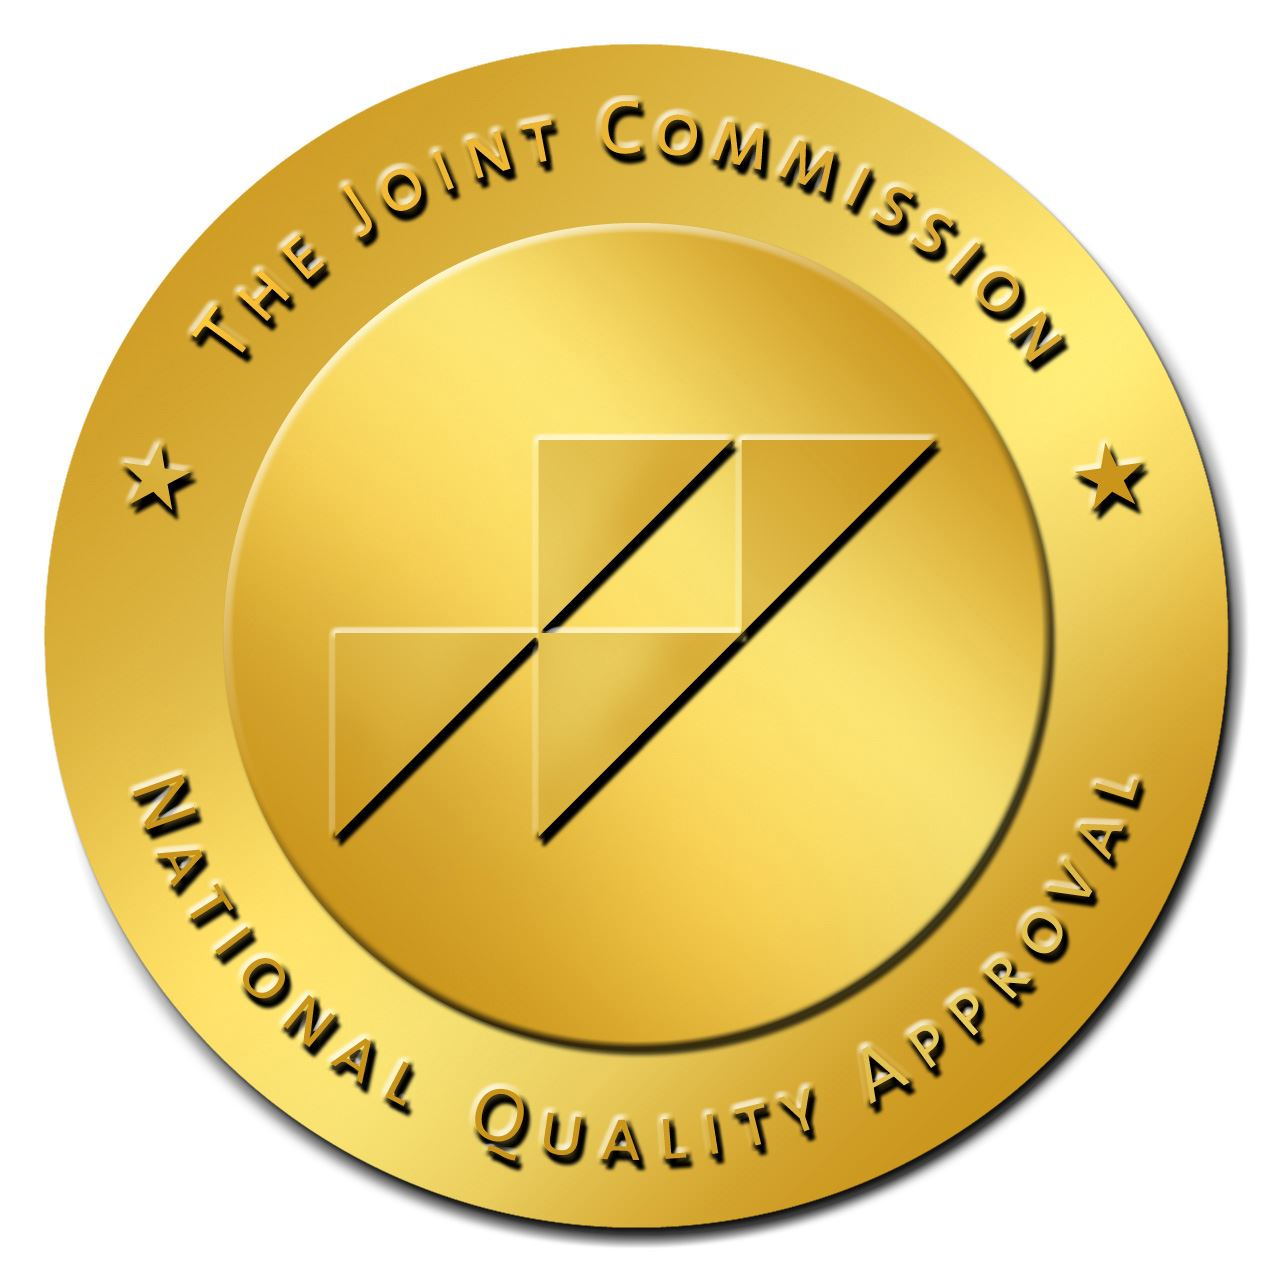 Join Commission Accreditation Seal